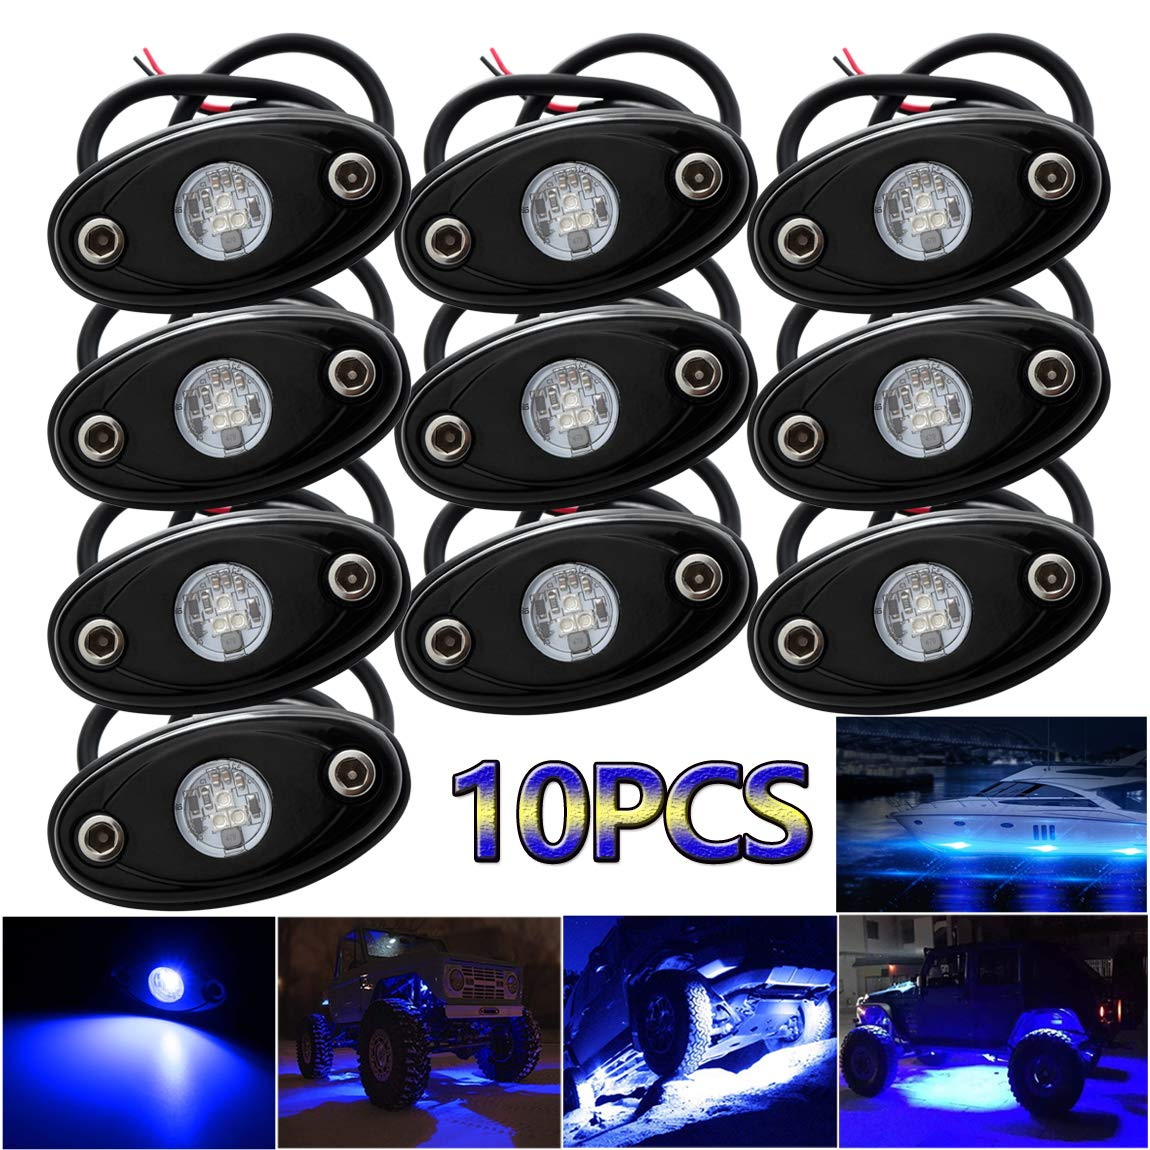 LEDMIRCY LED Rock Lights Blue Kit for JEEP Off Road Truck ATV SUV Boat Car Auto High Power Underbody Glow Neon Trail Rig Lights Underglow Lights Waterproof Shockproof(Pack of 10,Blue)